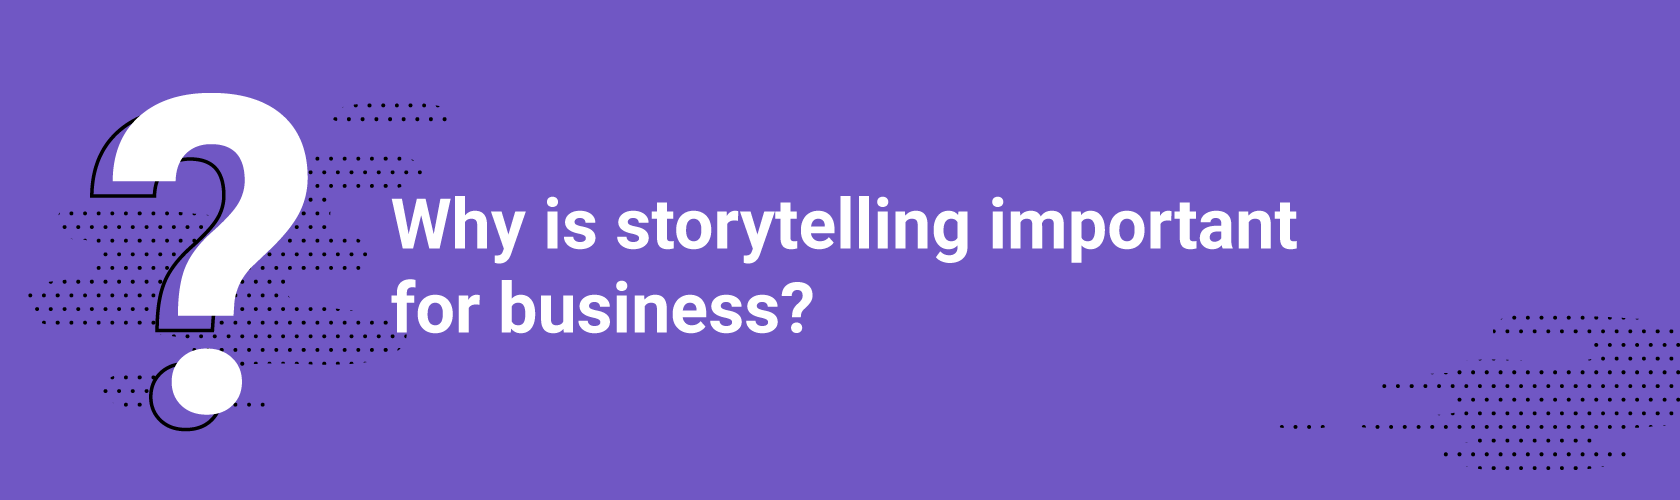 Q1. Why is storytelling important for business?